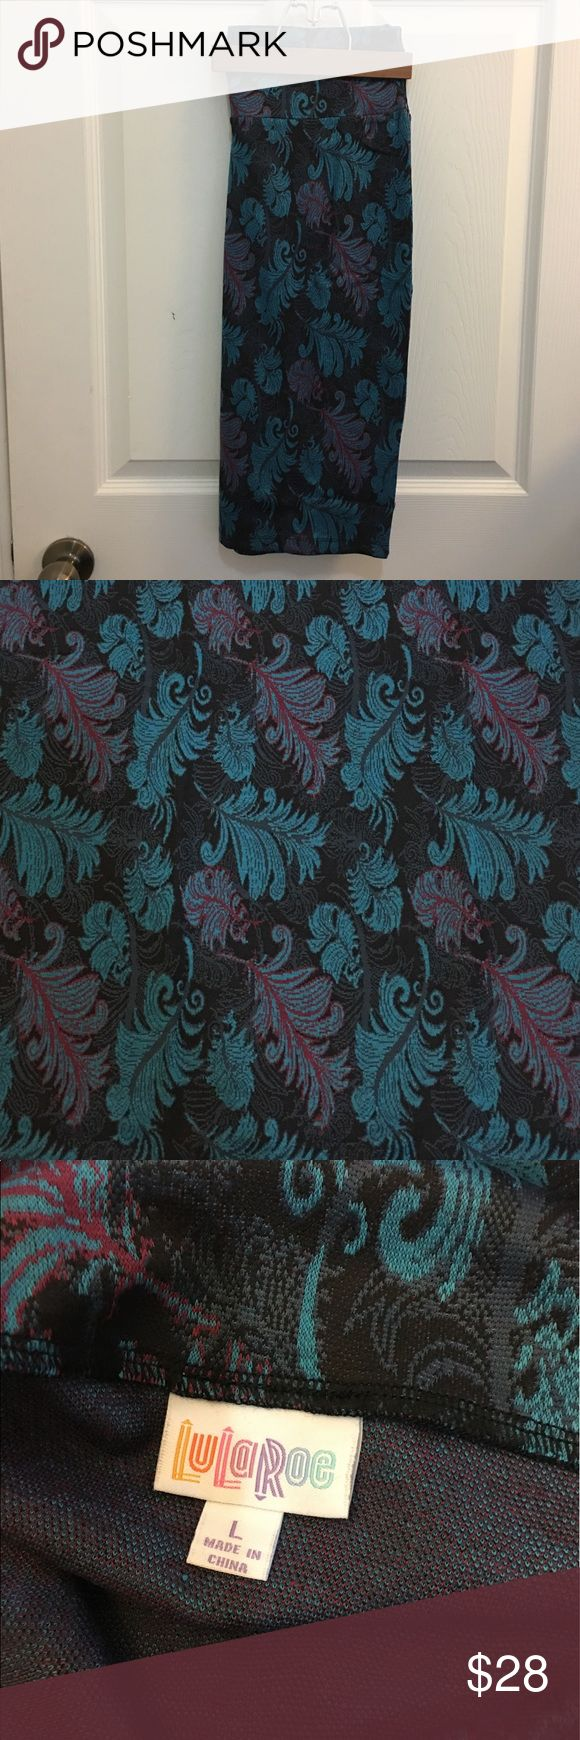 LuLaRoe L Cassie NWOT Large LuLaRoe Cassie Skirt. Black with robin's egg blue and magenta scrolling leaf pattern. Never worn! LuLaRoe Skirts Pencil